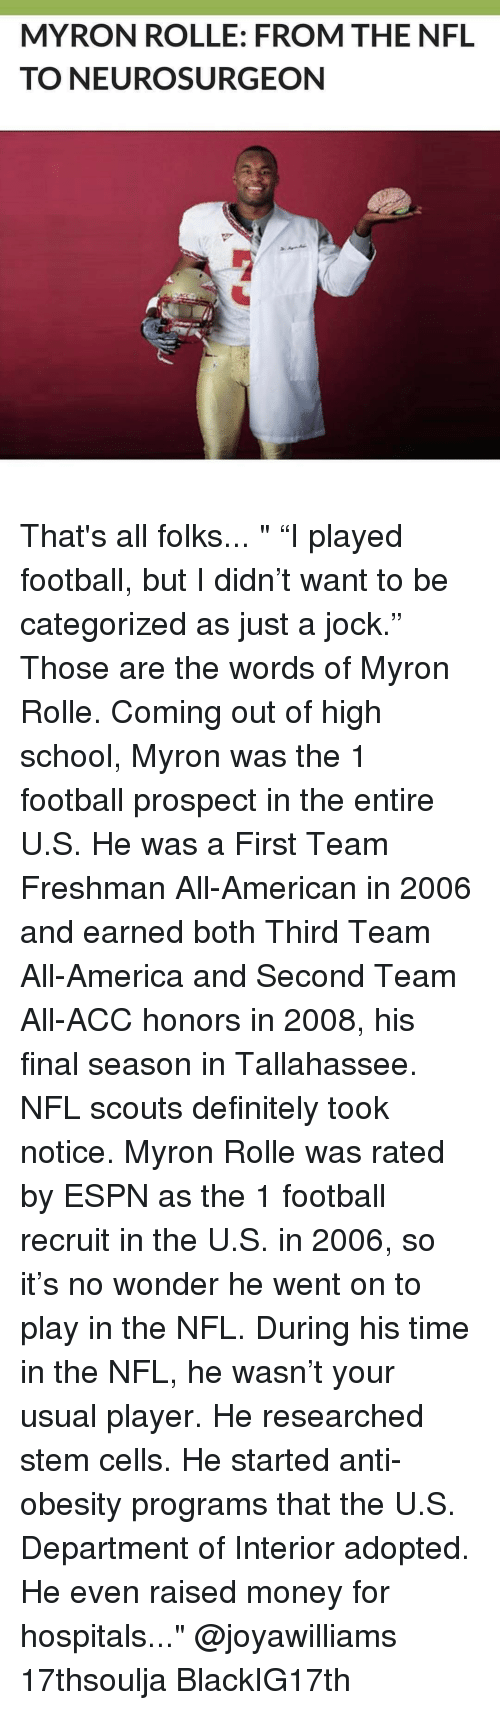 """Thats All Folk: MYRON ROLLE: FROM THE NFL  TO NEURO SURGEON That's all folks... """" """"I played football, but I didn't want to be categorized as just a jock."""" Those are the words of Myron Rolle. Coming out of high school, Myron was the 1 football prospect in the entire U.S. He was a First Team Freshman All-American in 2006 and earned both Third Team All-America and Second Team All-ACC honors in 2008, his final season in Tallahassee. NFL scouts definitely took notice. Myron Rolle was rated by ESPN as the 1 football recruit in the U.S. in 2006, so it's no wonder he went on to play in the NFL. During his time in the NFL, he wasn't your usual player. He researched stem cells. He started anti-obesity programs that the U.S. Department of Interior adopted. He even raised money for hospitals..."""" @joyawilliams 17thsoulja BlackIG17th"""